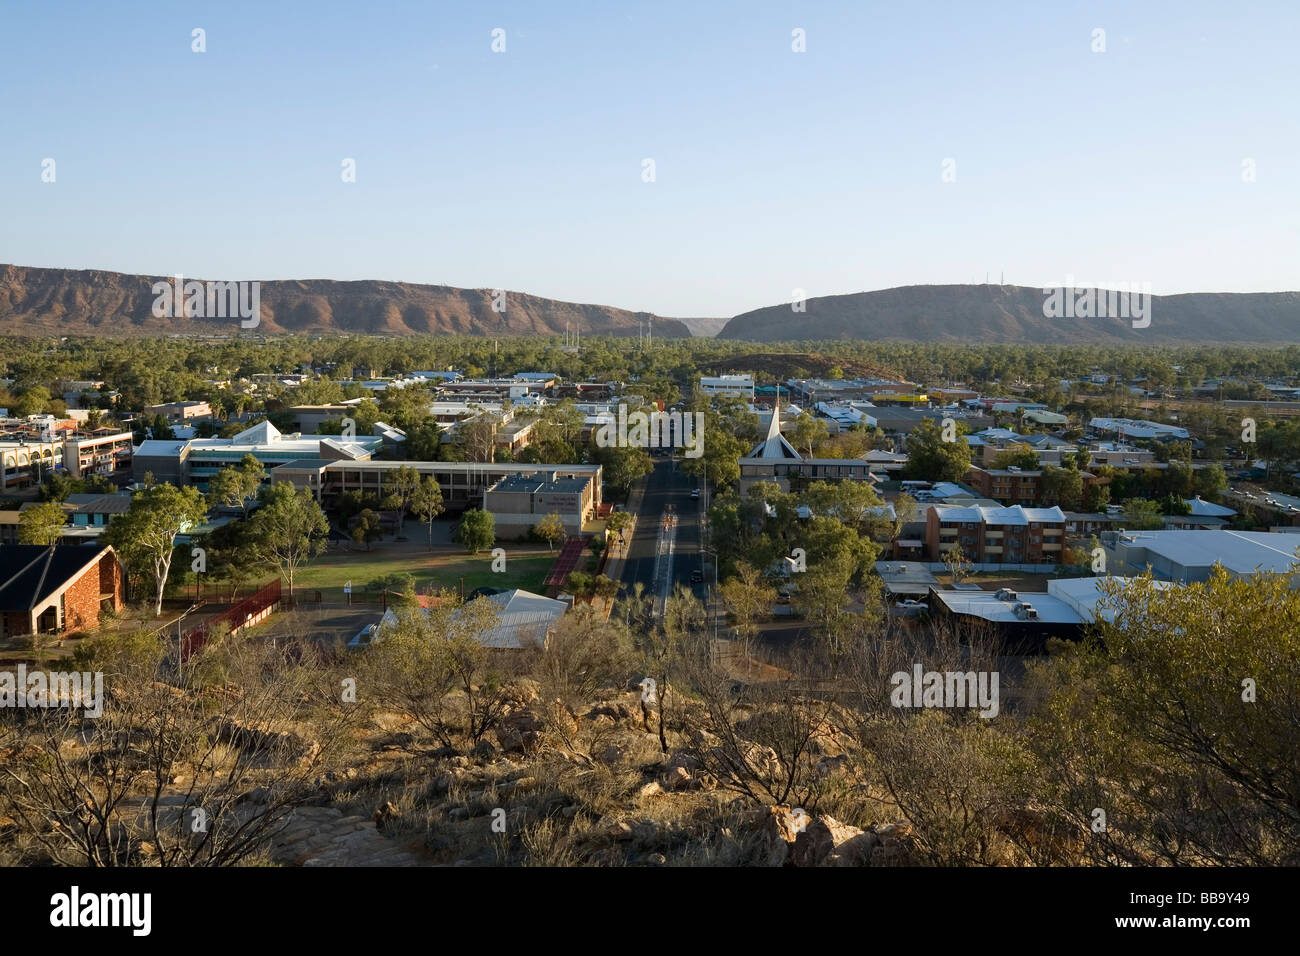 View over the outback town of Alice Springs from Anzac Hill.  Alice Springs, Northern Territory, AUSTRALIA - Stock Image